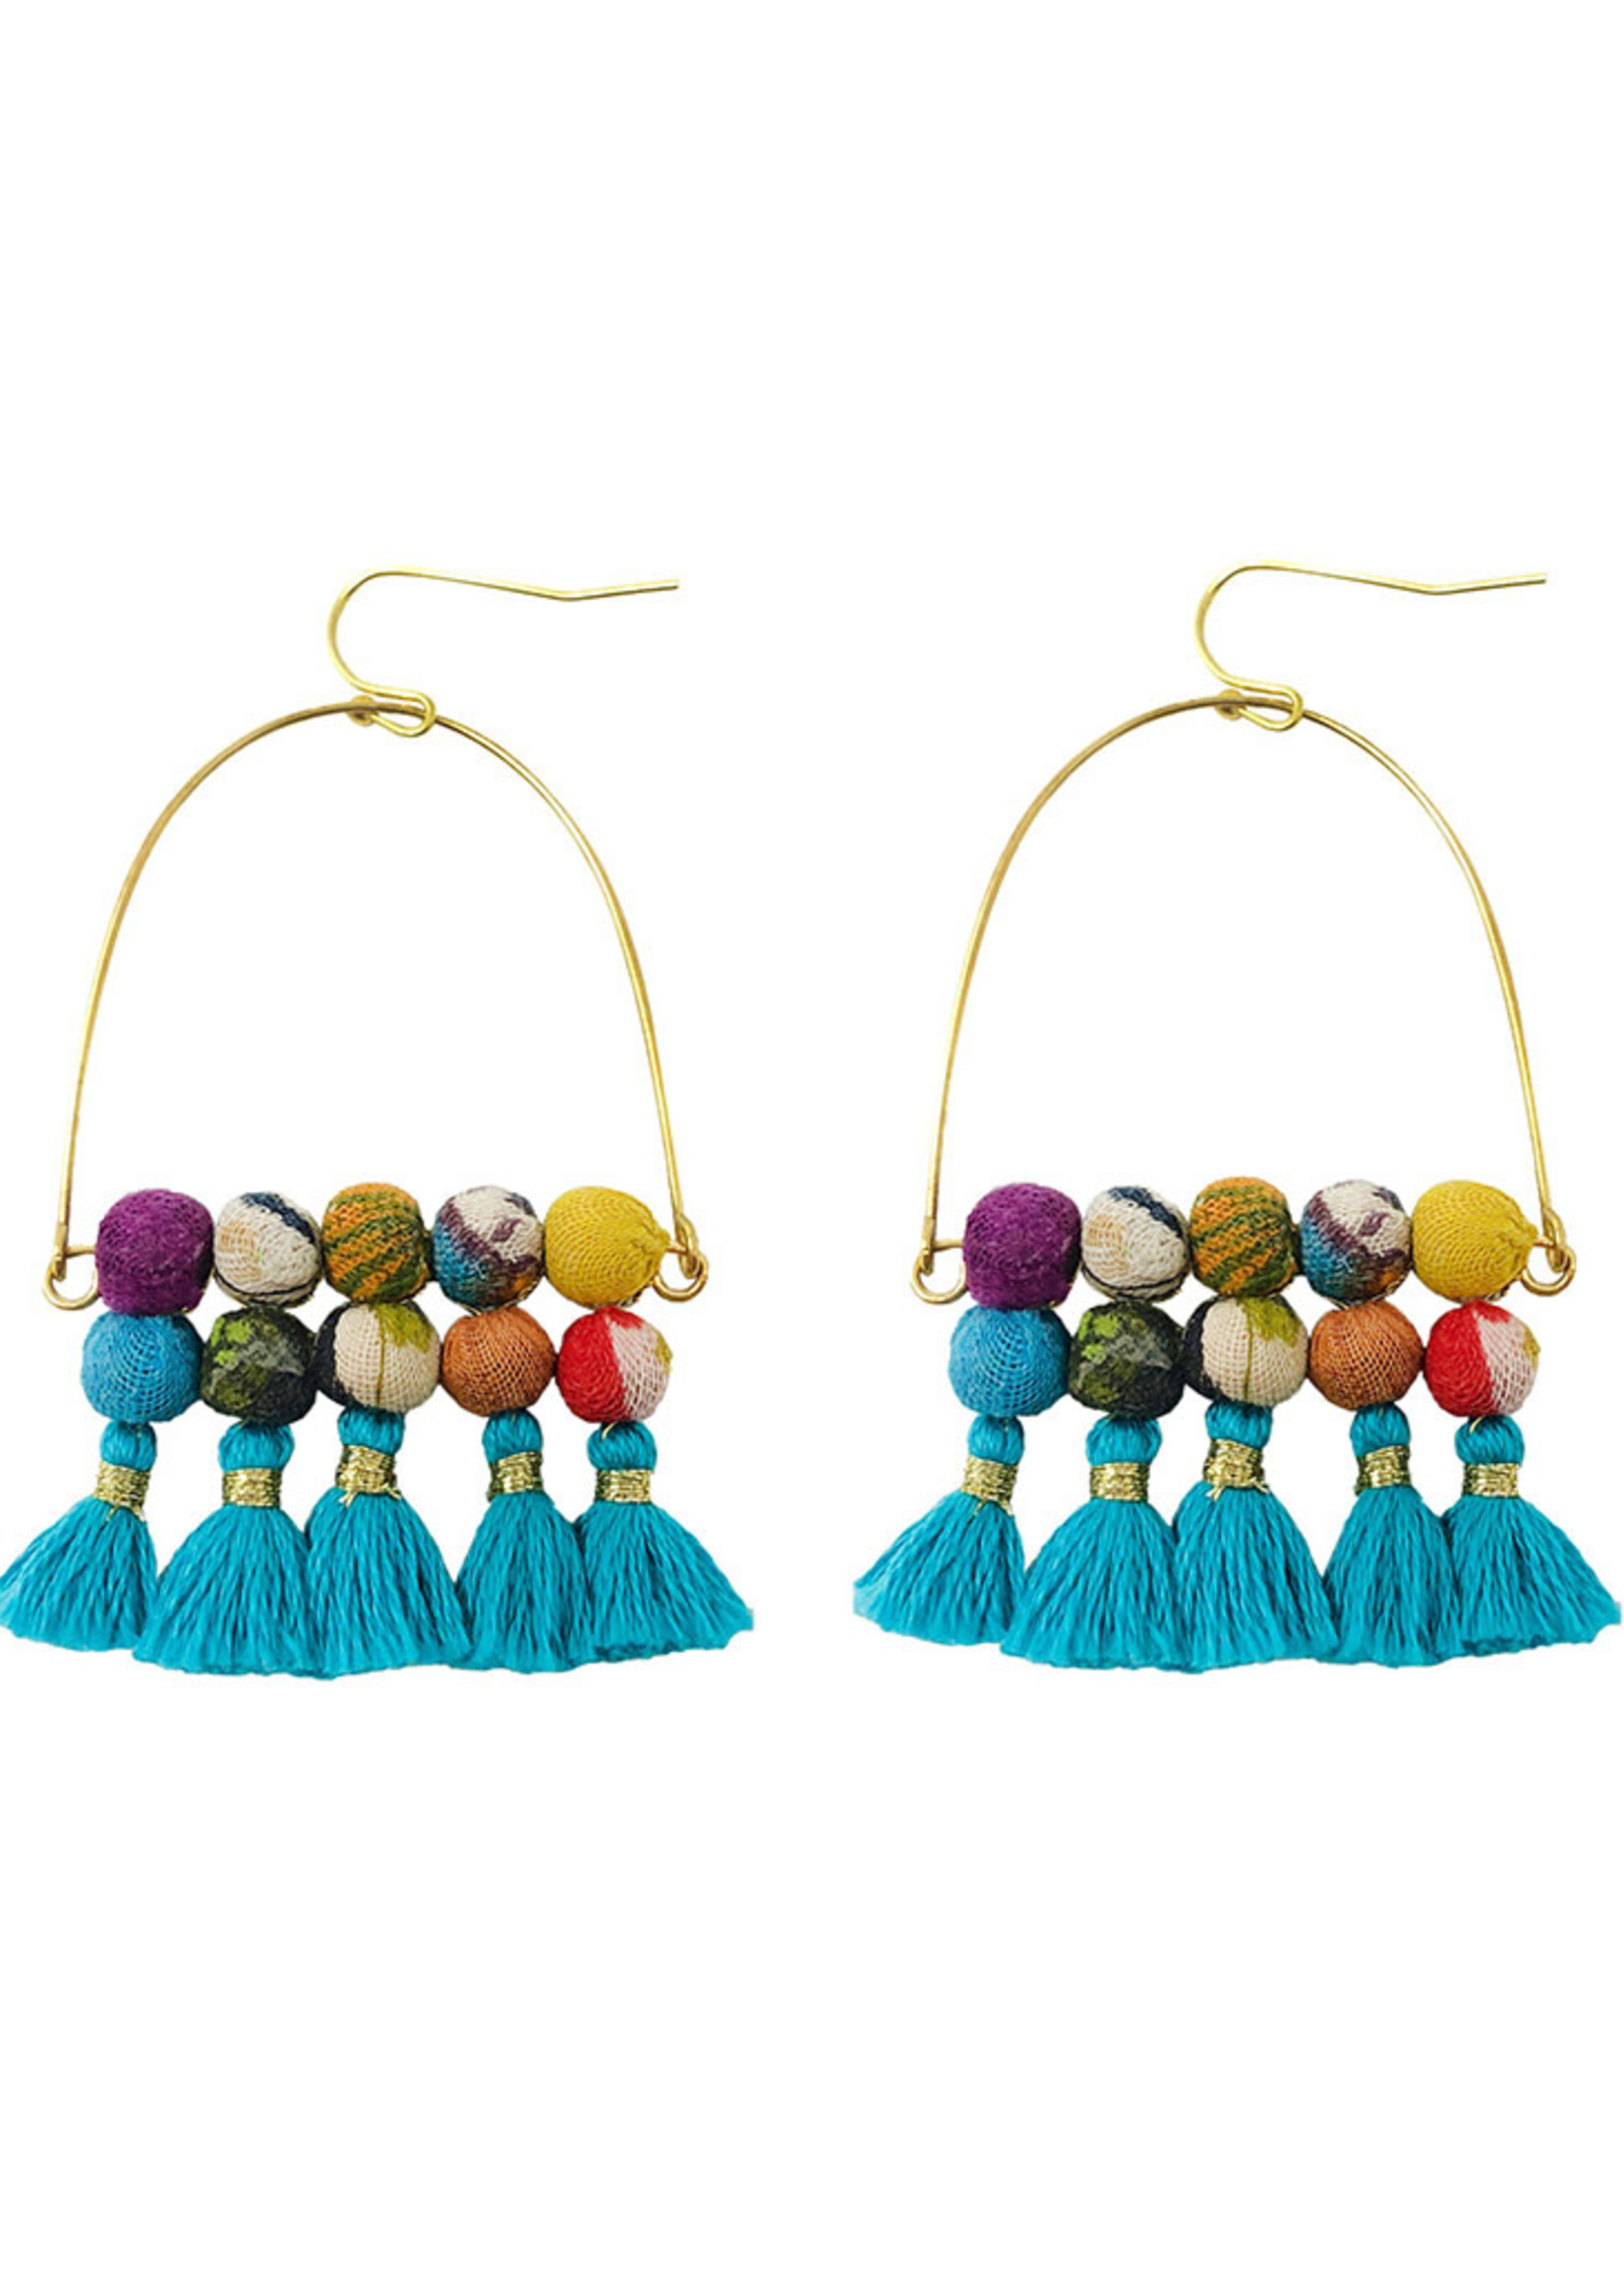 WorldFinds Arched Turquoise Tassel Earrings